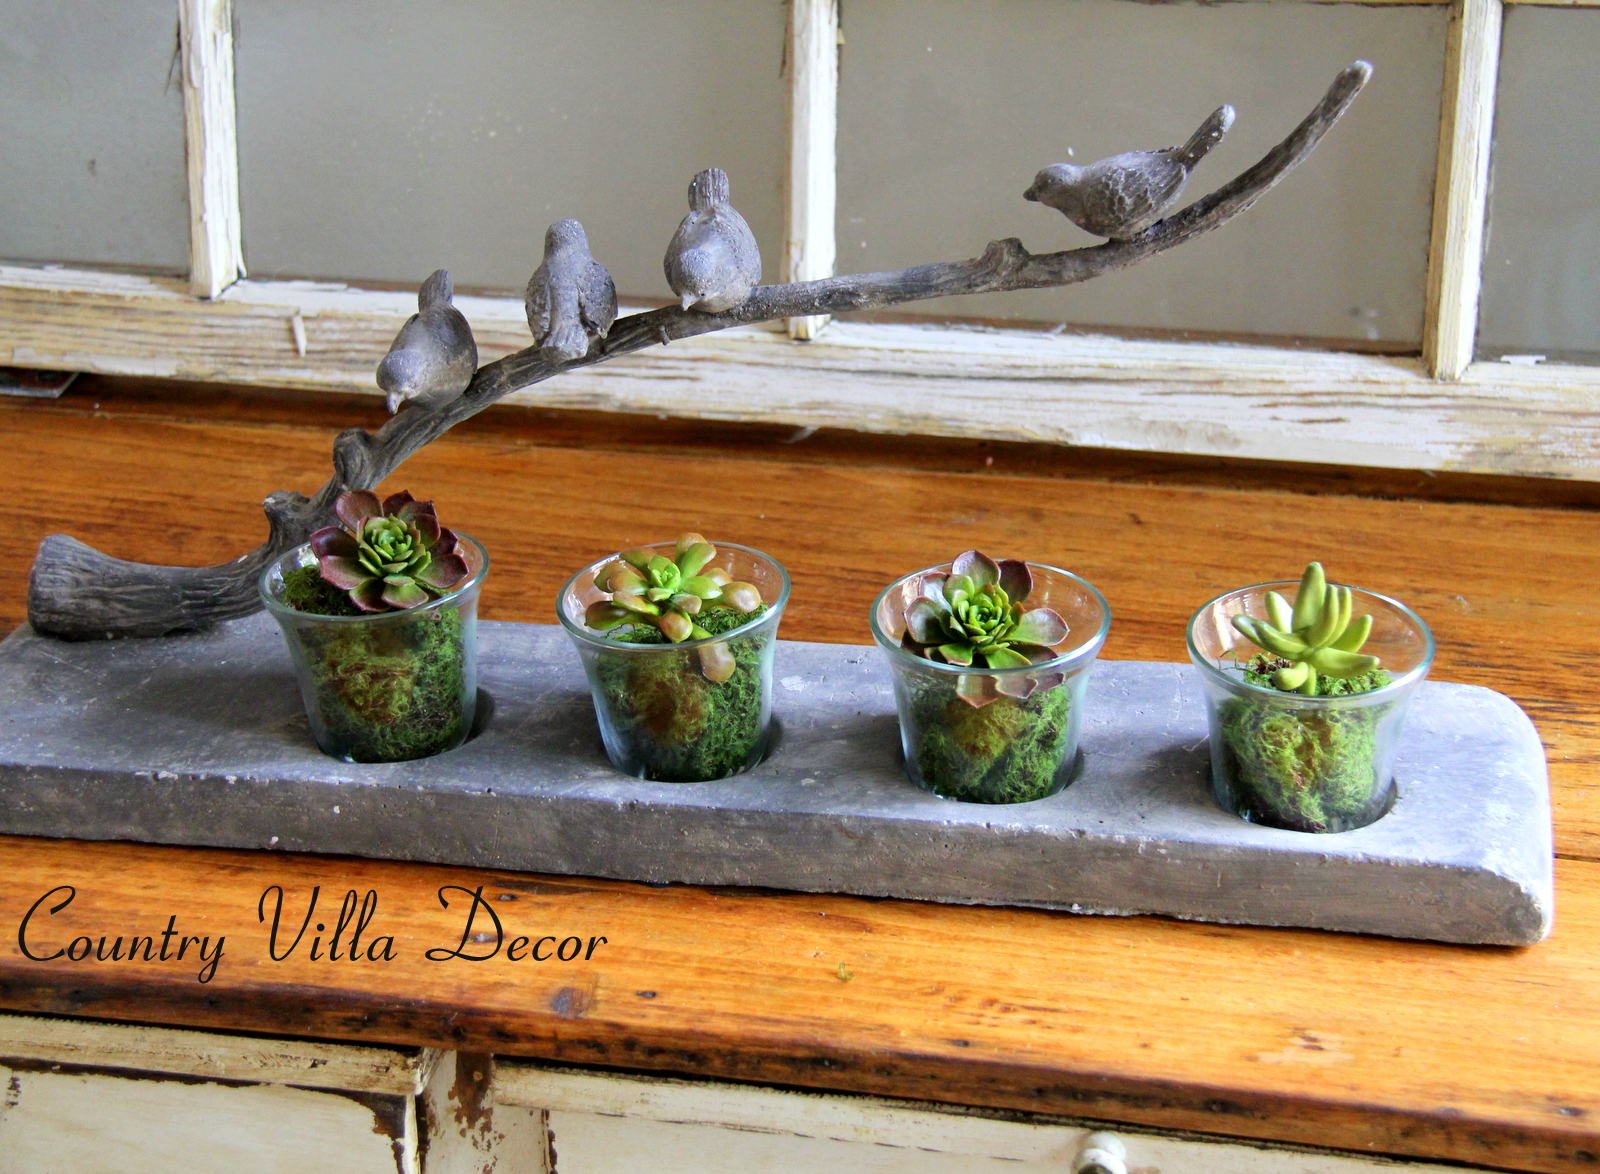 COUNTRY VILLA DECOR: Outdoor Living, Beach Cottage and French